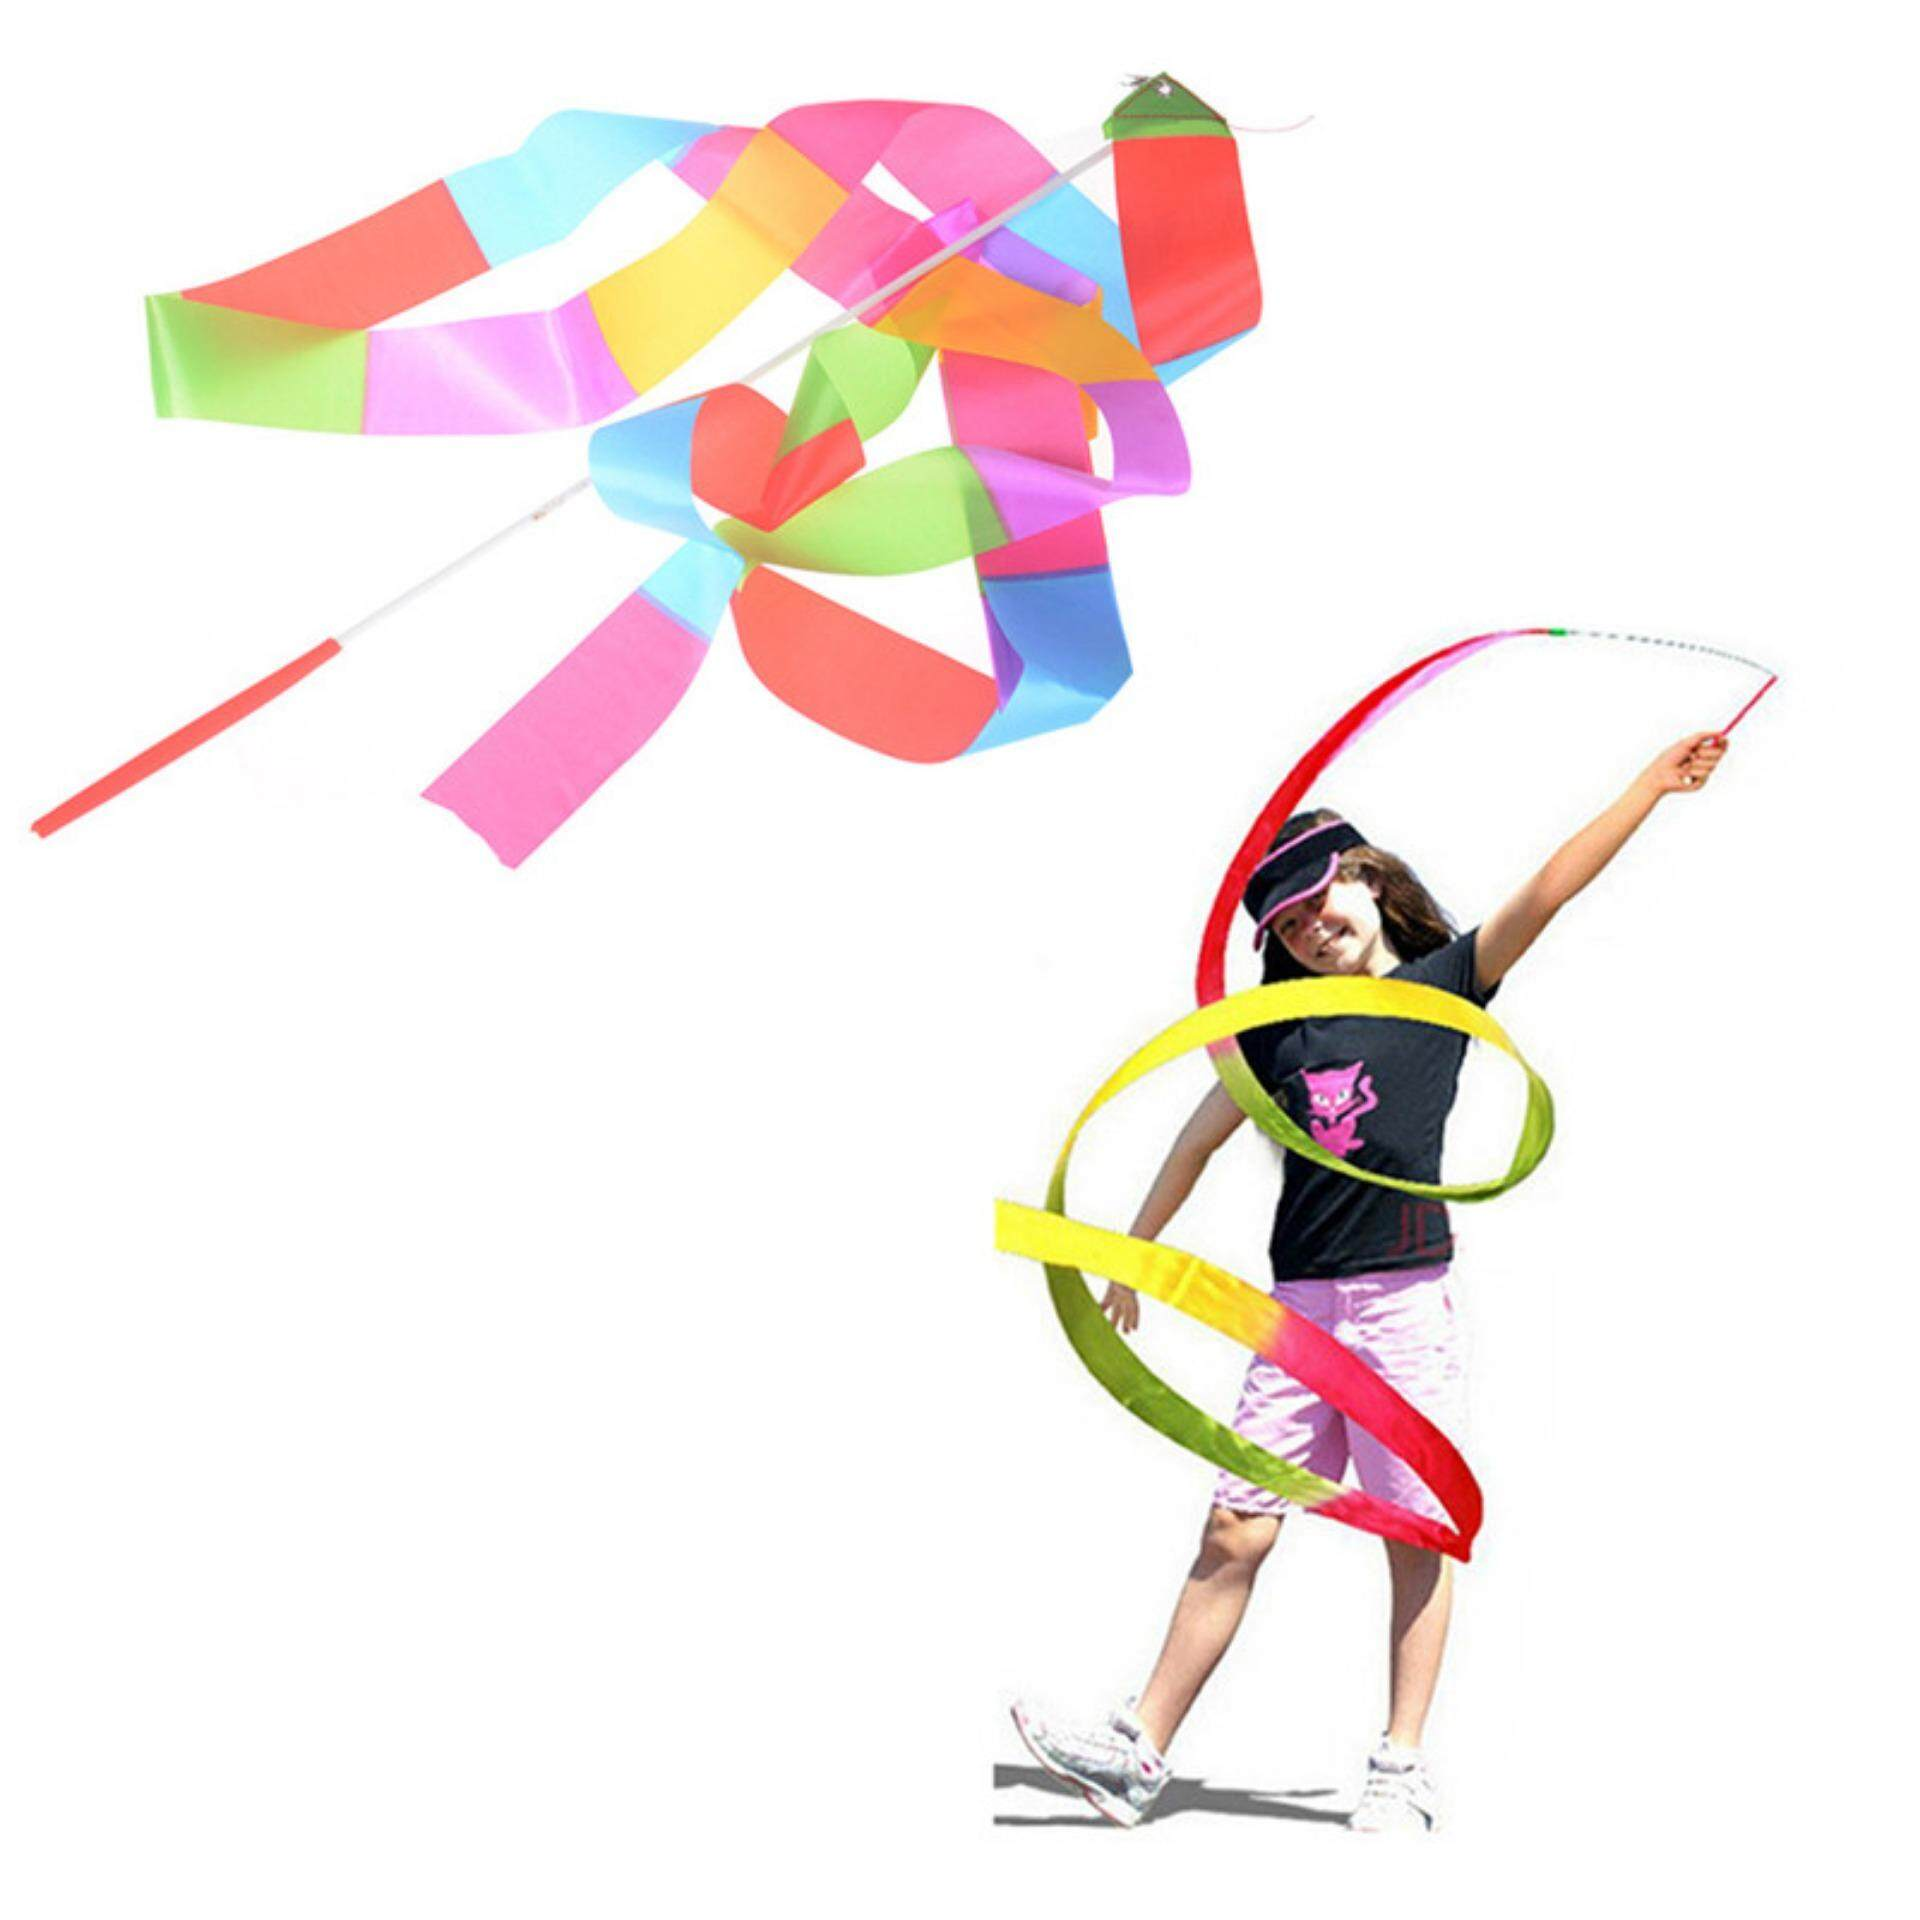 Popular Colorful 4m Ribbon Gymnastics Dance Dancer Toy Kid Outdoor Sport Toy By Bloom Zoom.